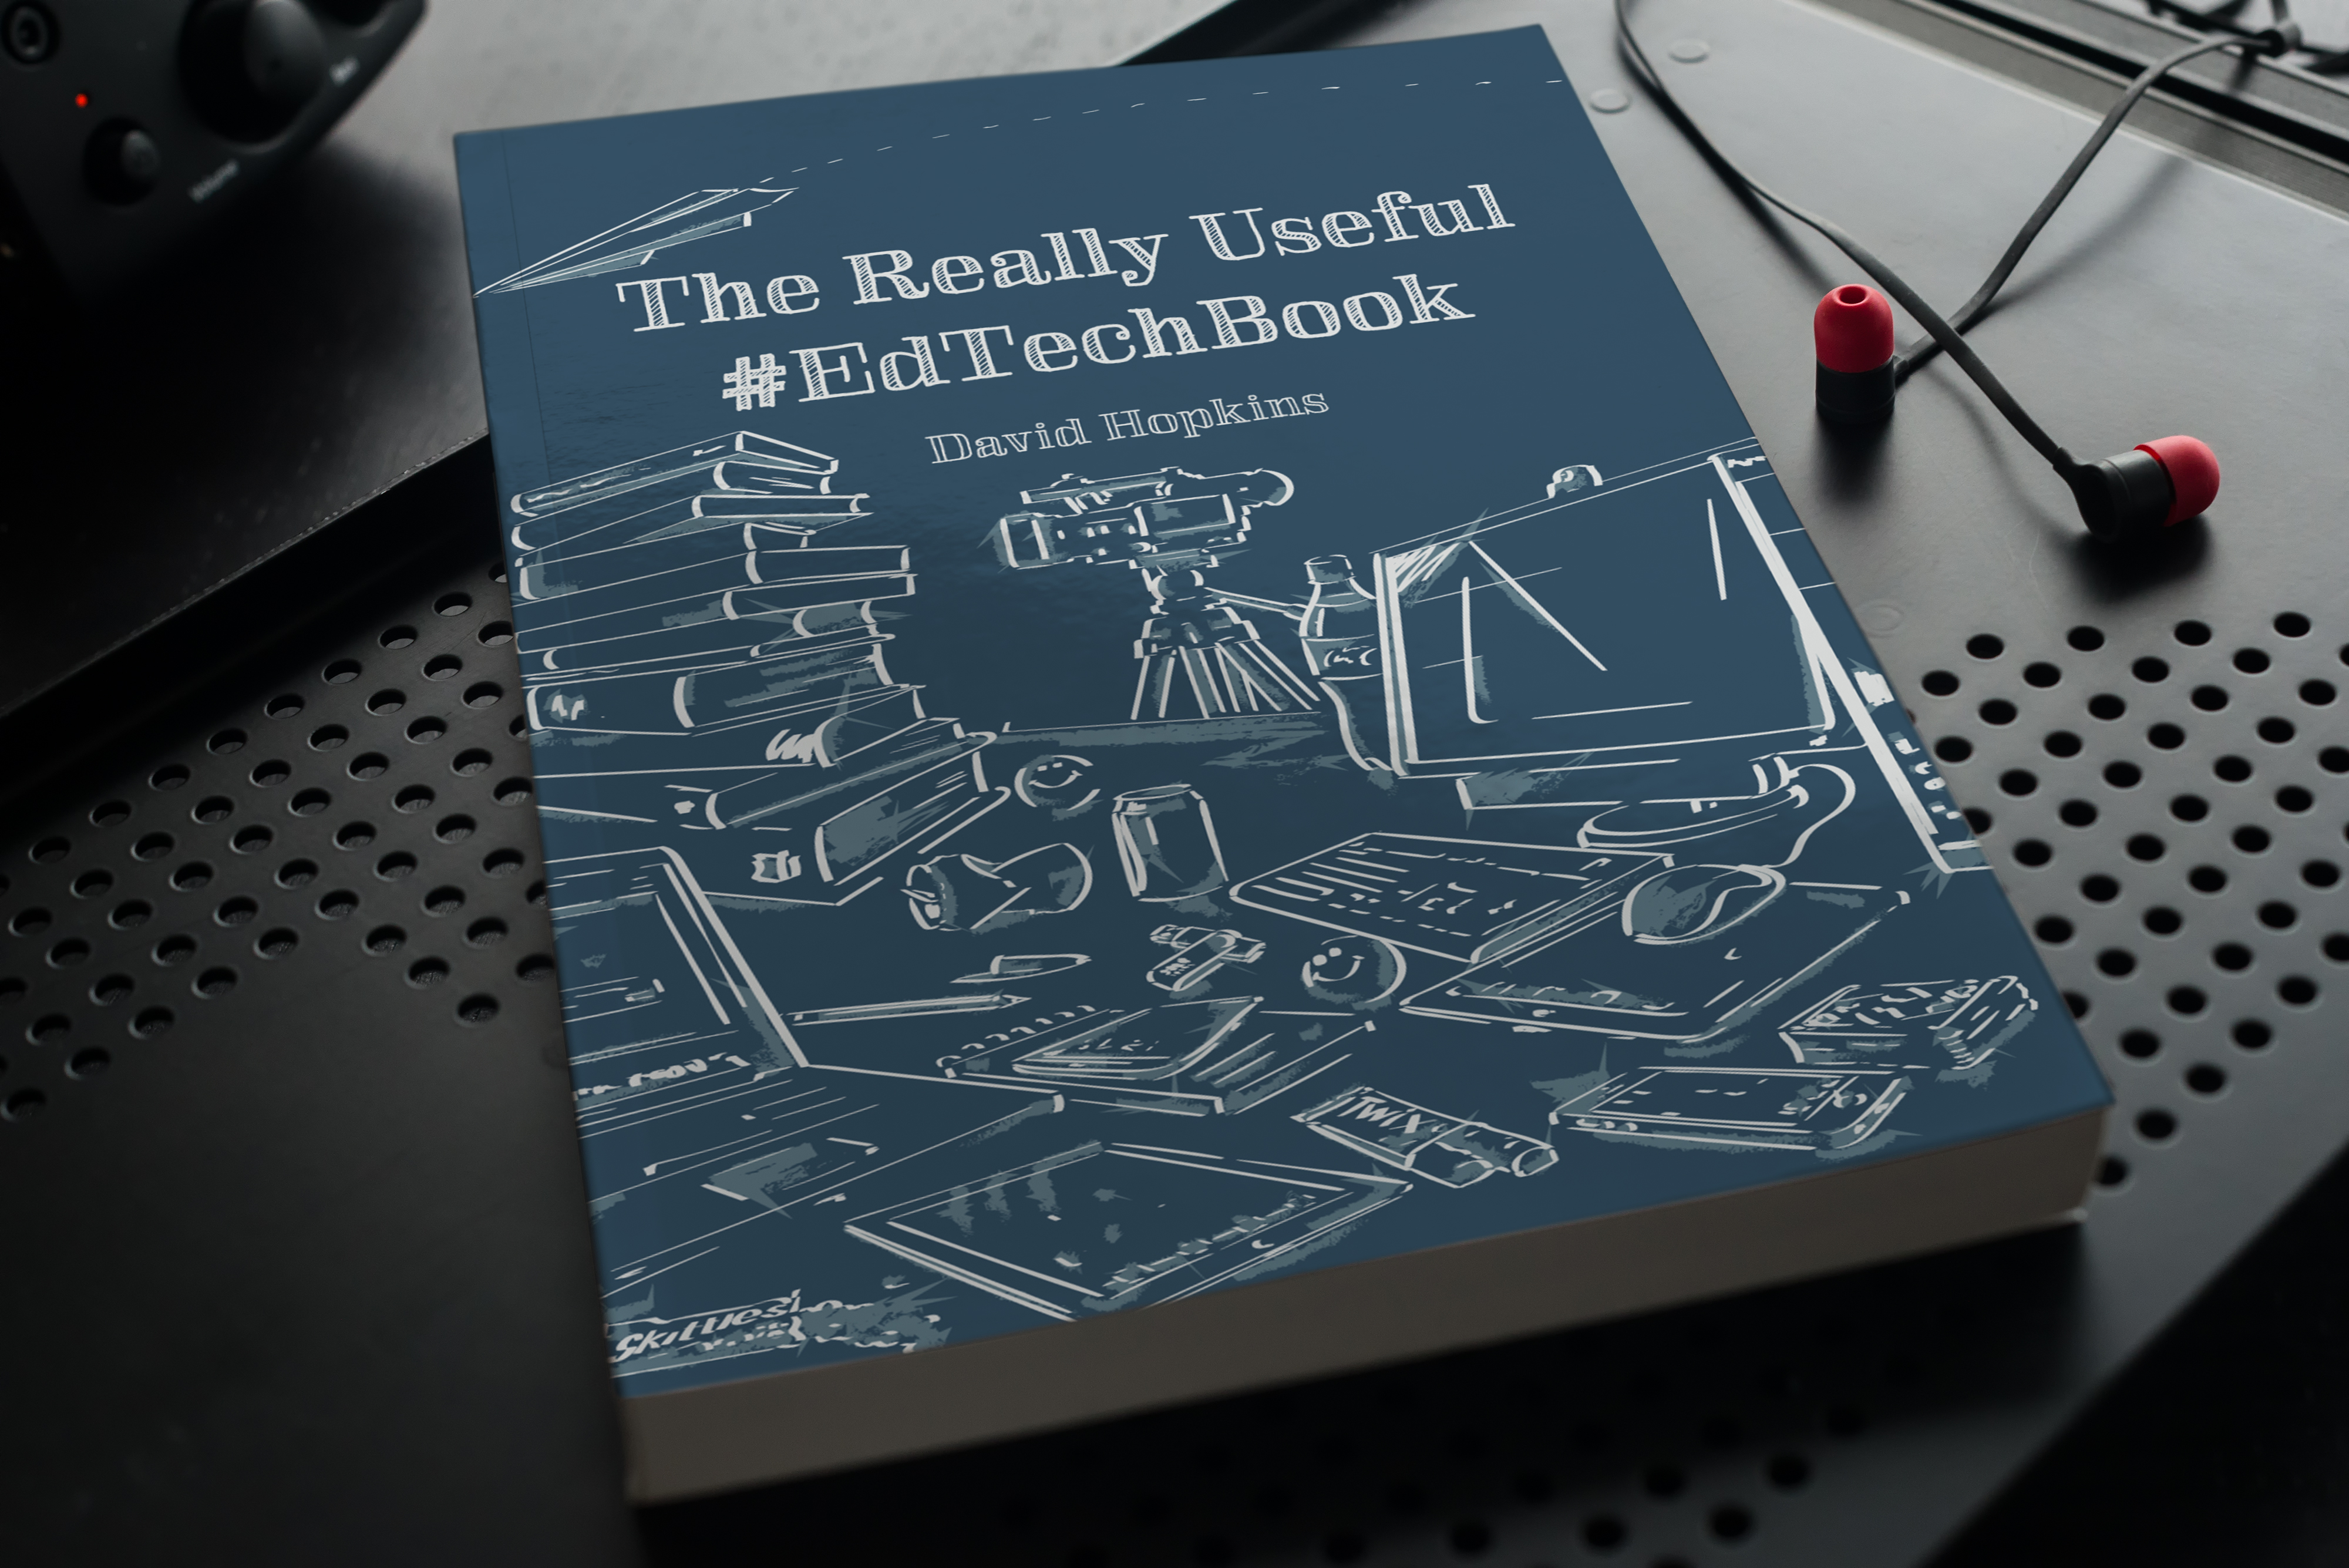 The Really Useful #EdTechBook, David Hopkins